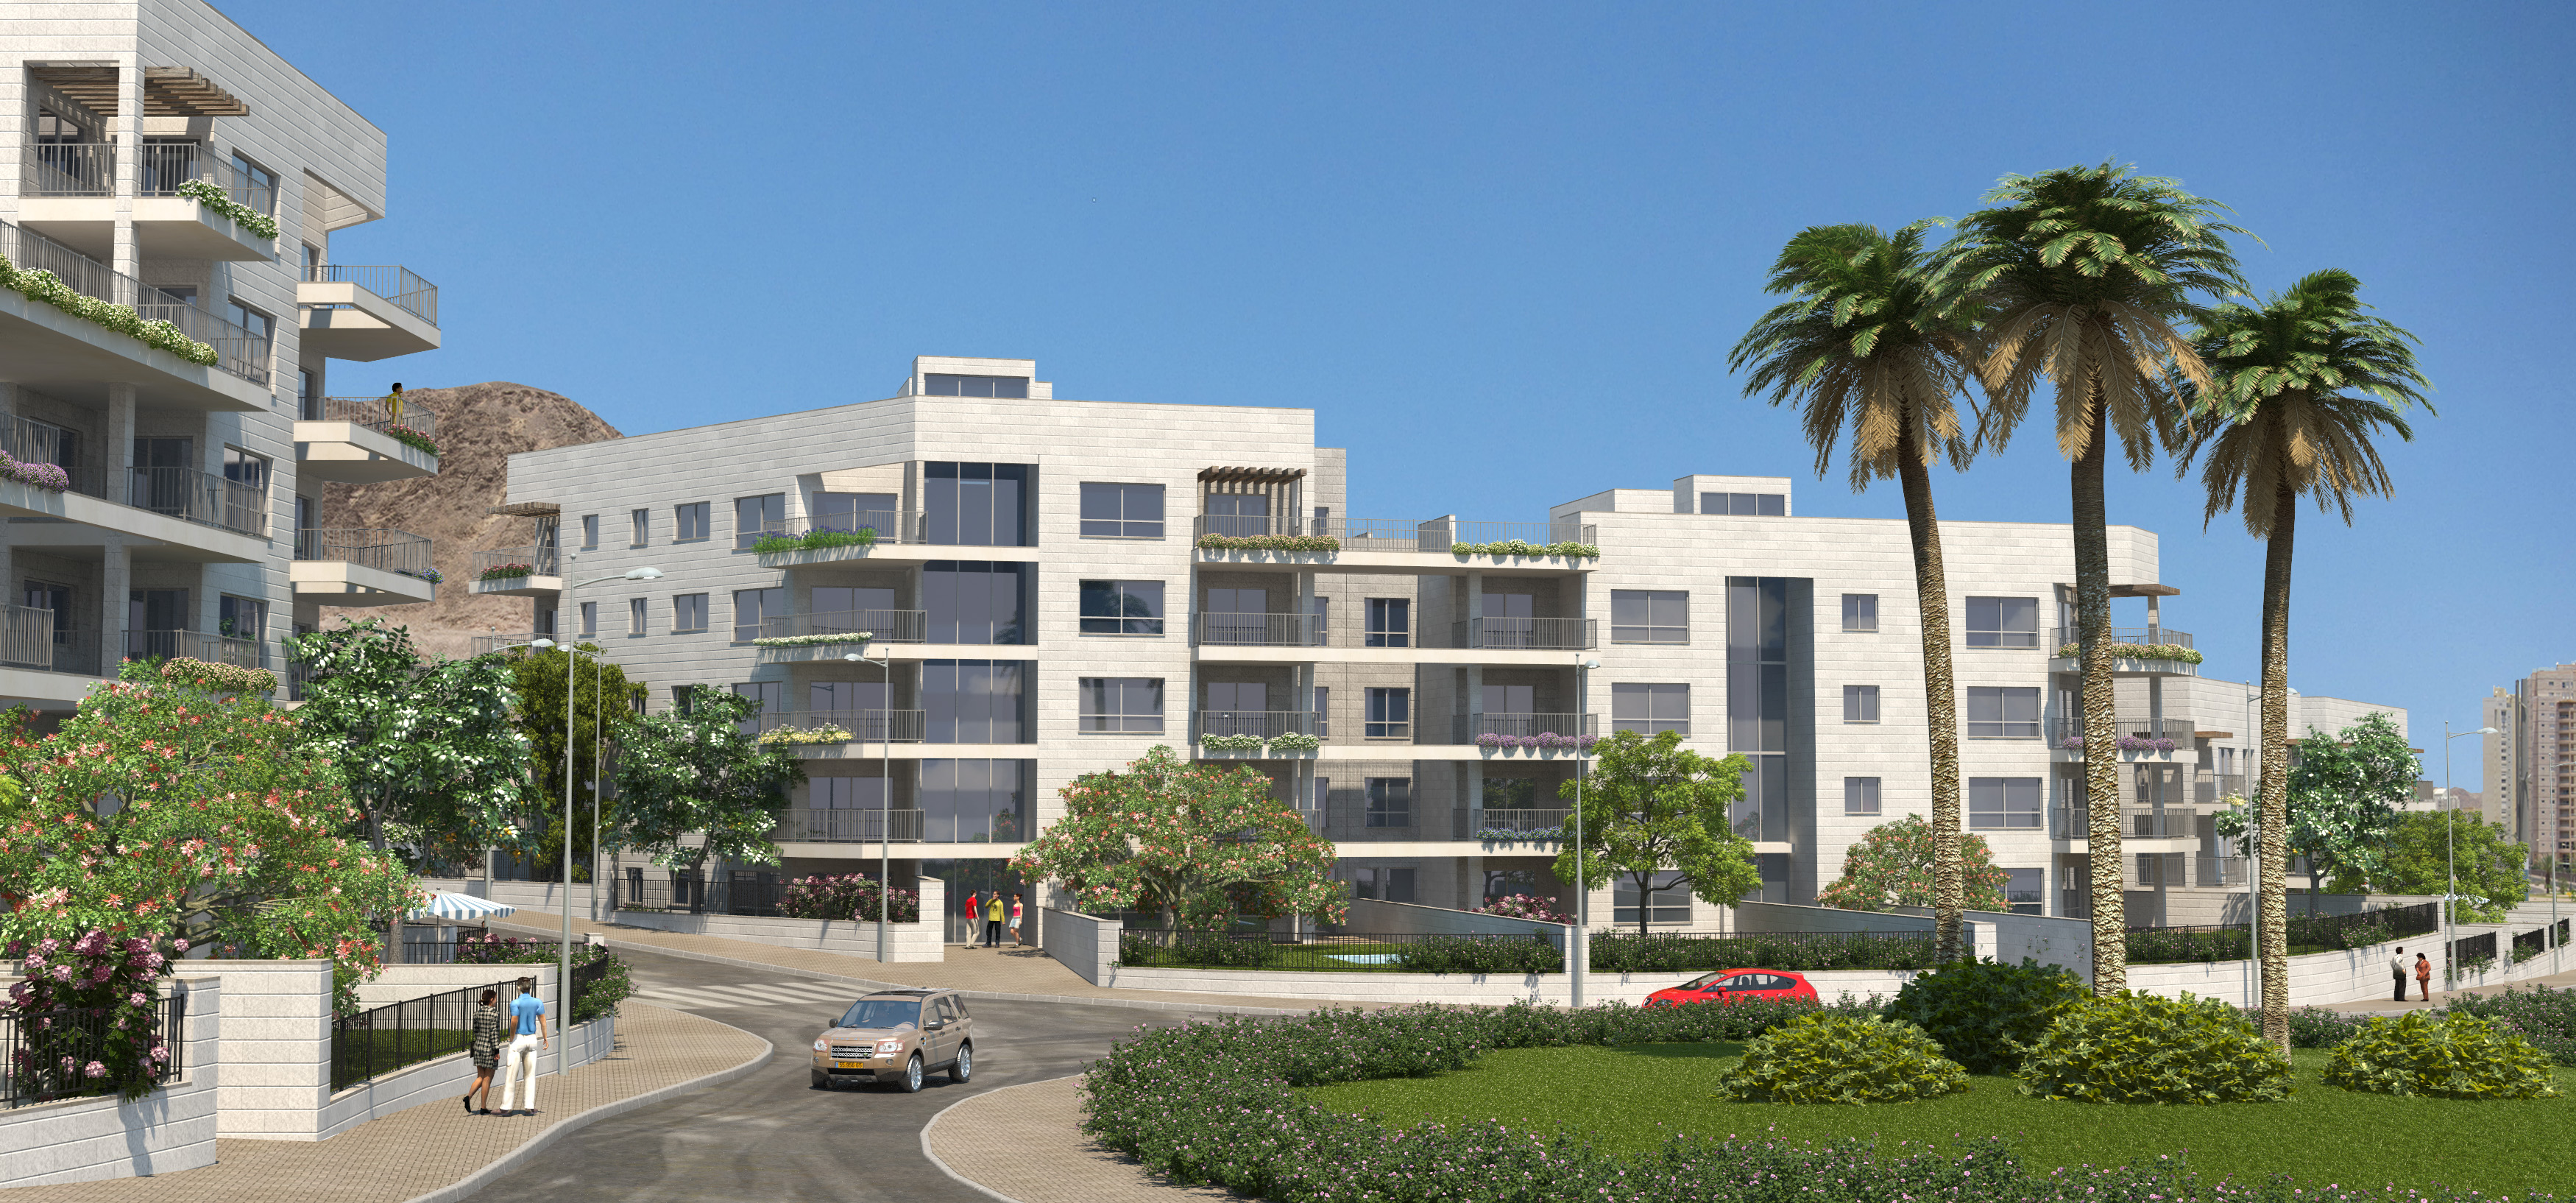 S. Noufi - Residential complex